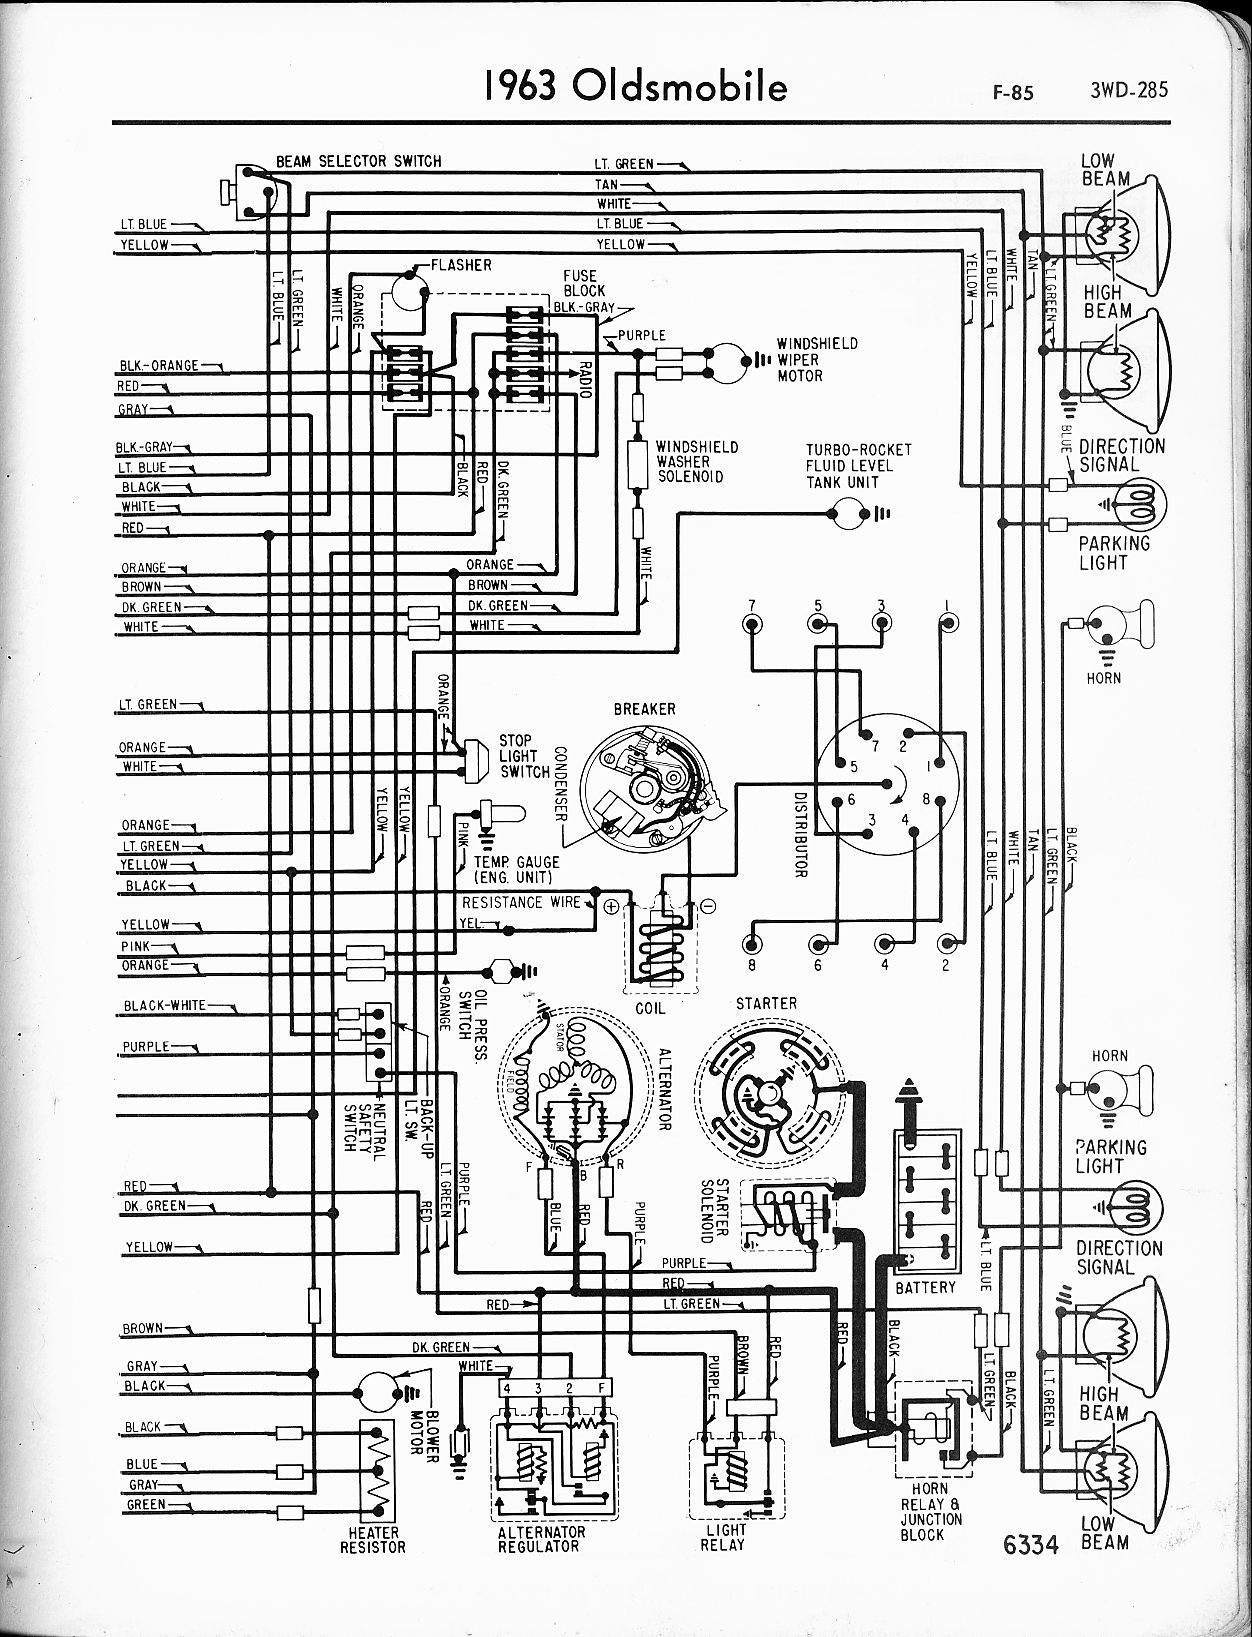 Oldsmobile 88 Wiring Diagram Archive Of Automotive 1993 Jeep Wrangler Dash Schematic 1995 Silhouette Opinions About Rh Voterid Co 1956